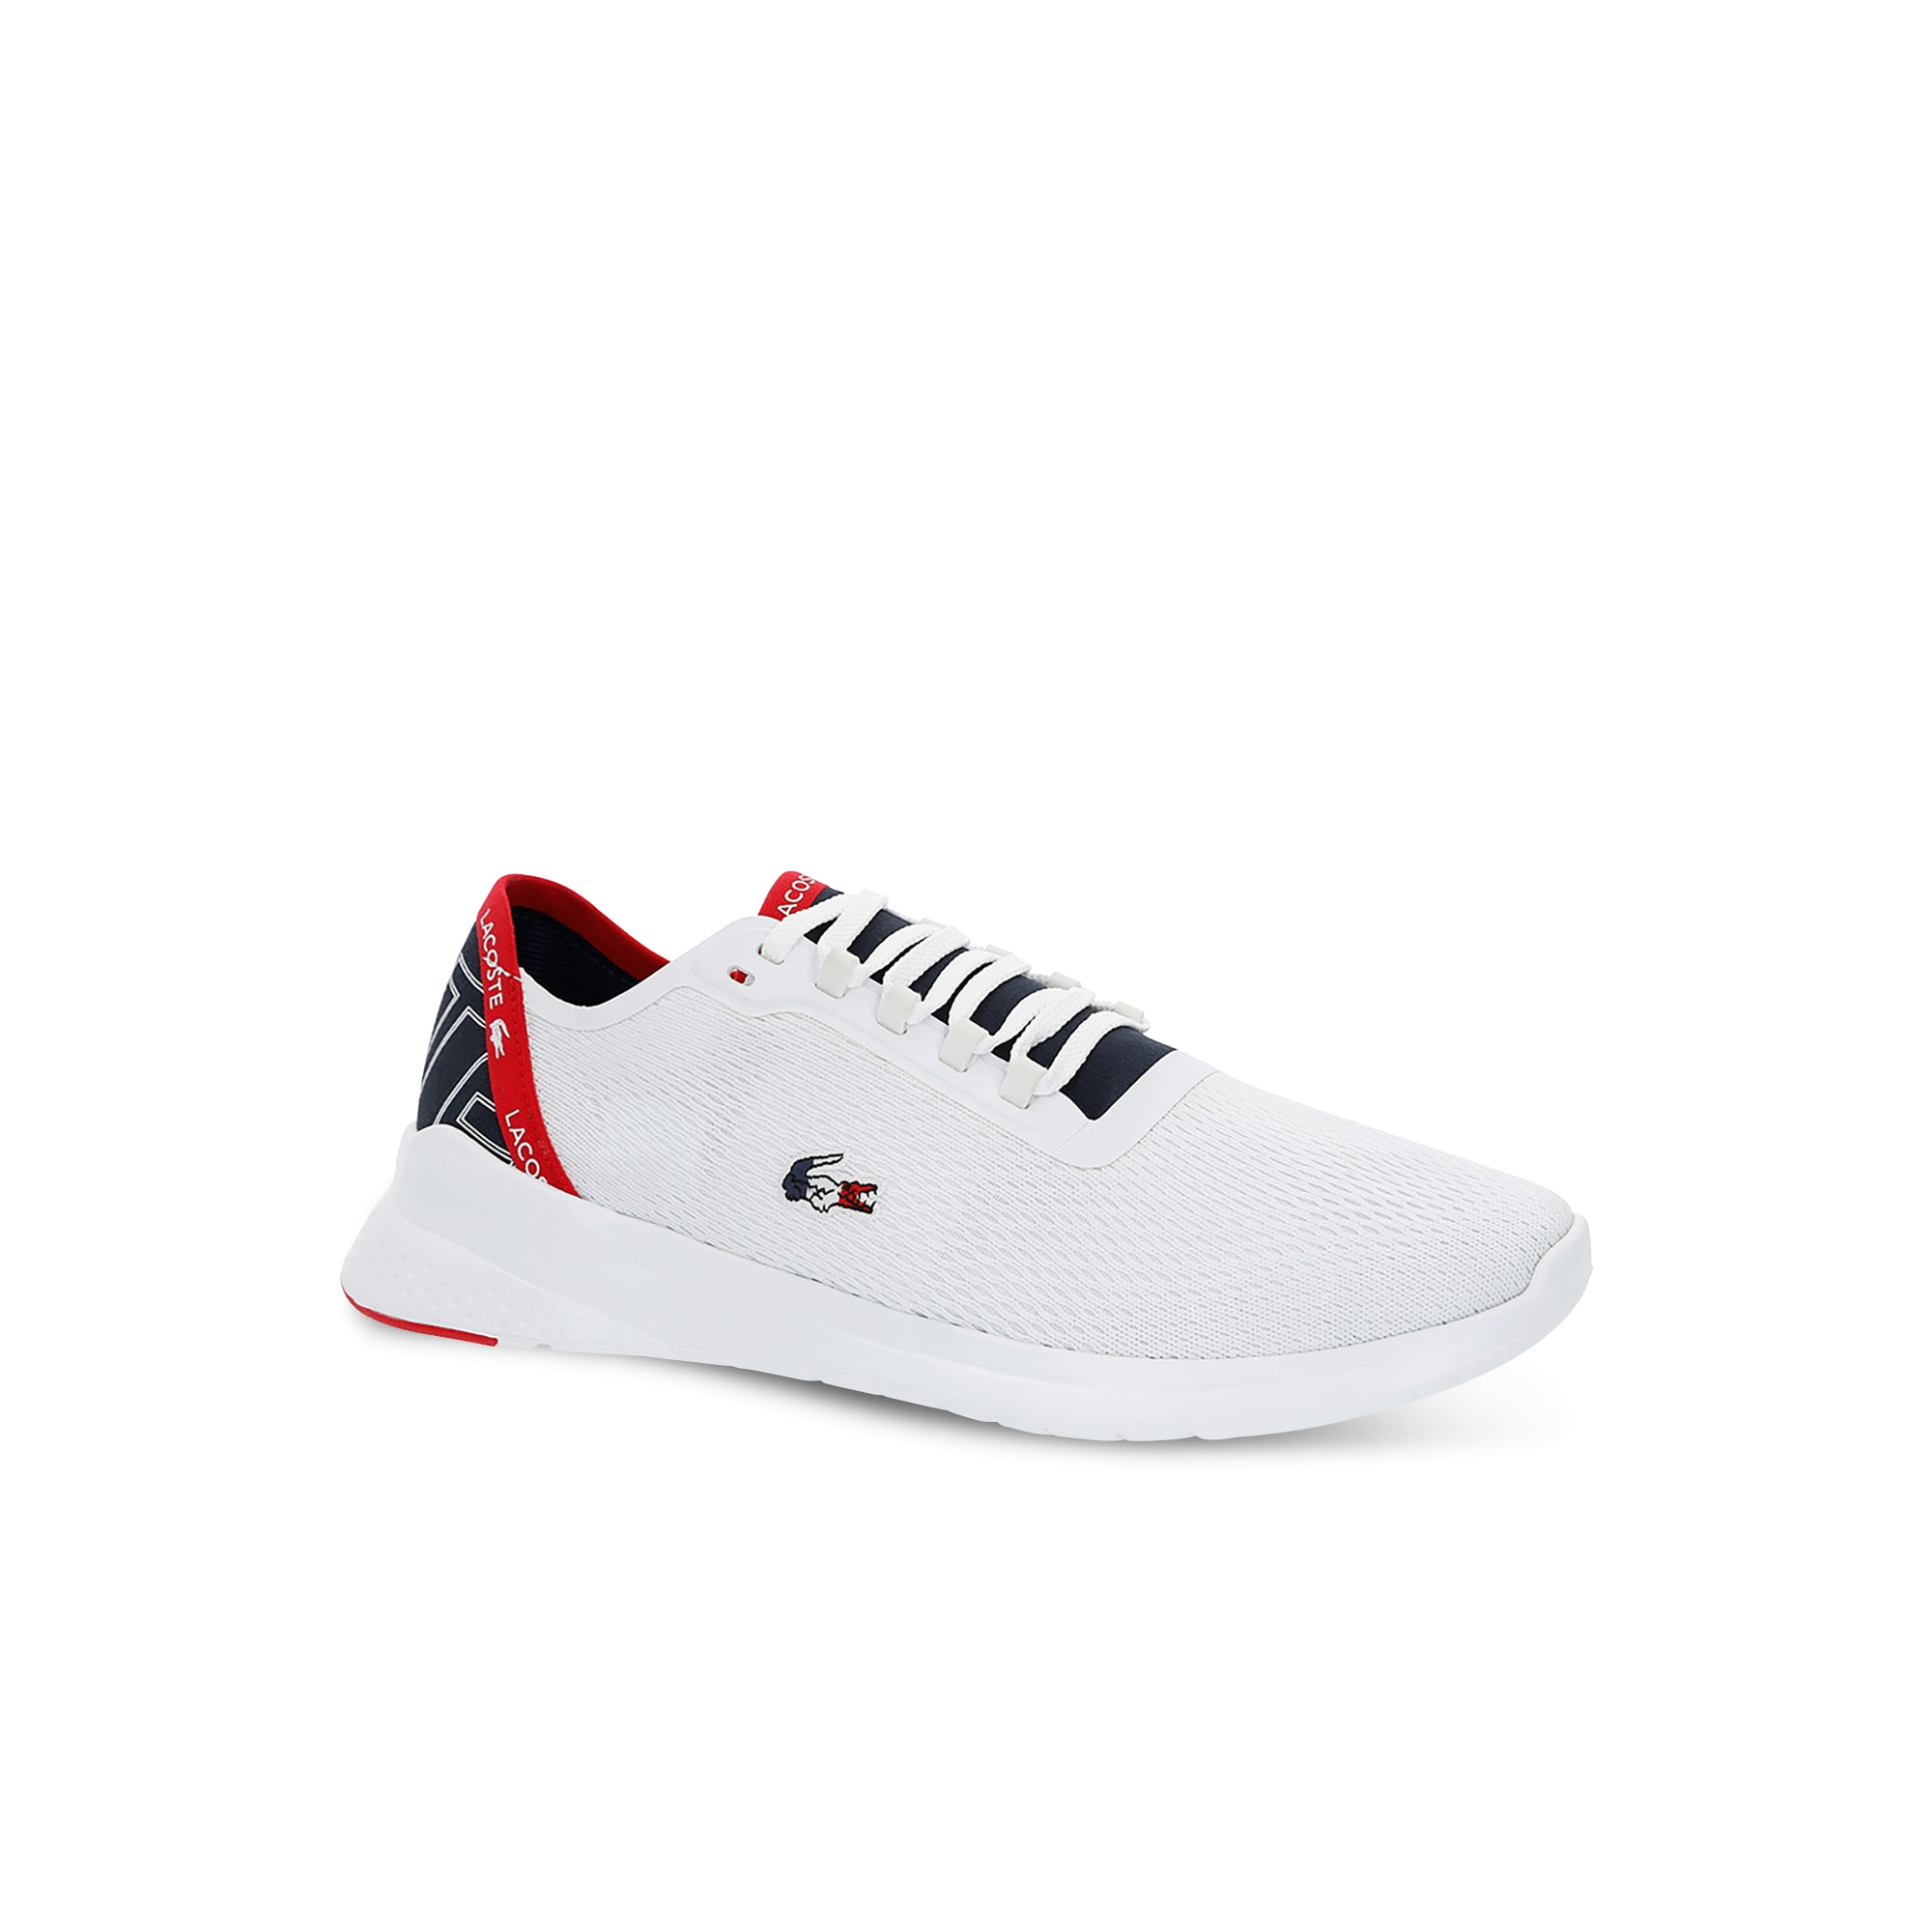 993c8dba2 Men s LT Fit Sneakers with Tricolor Croc